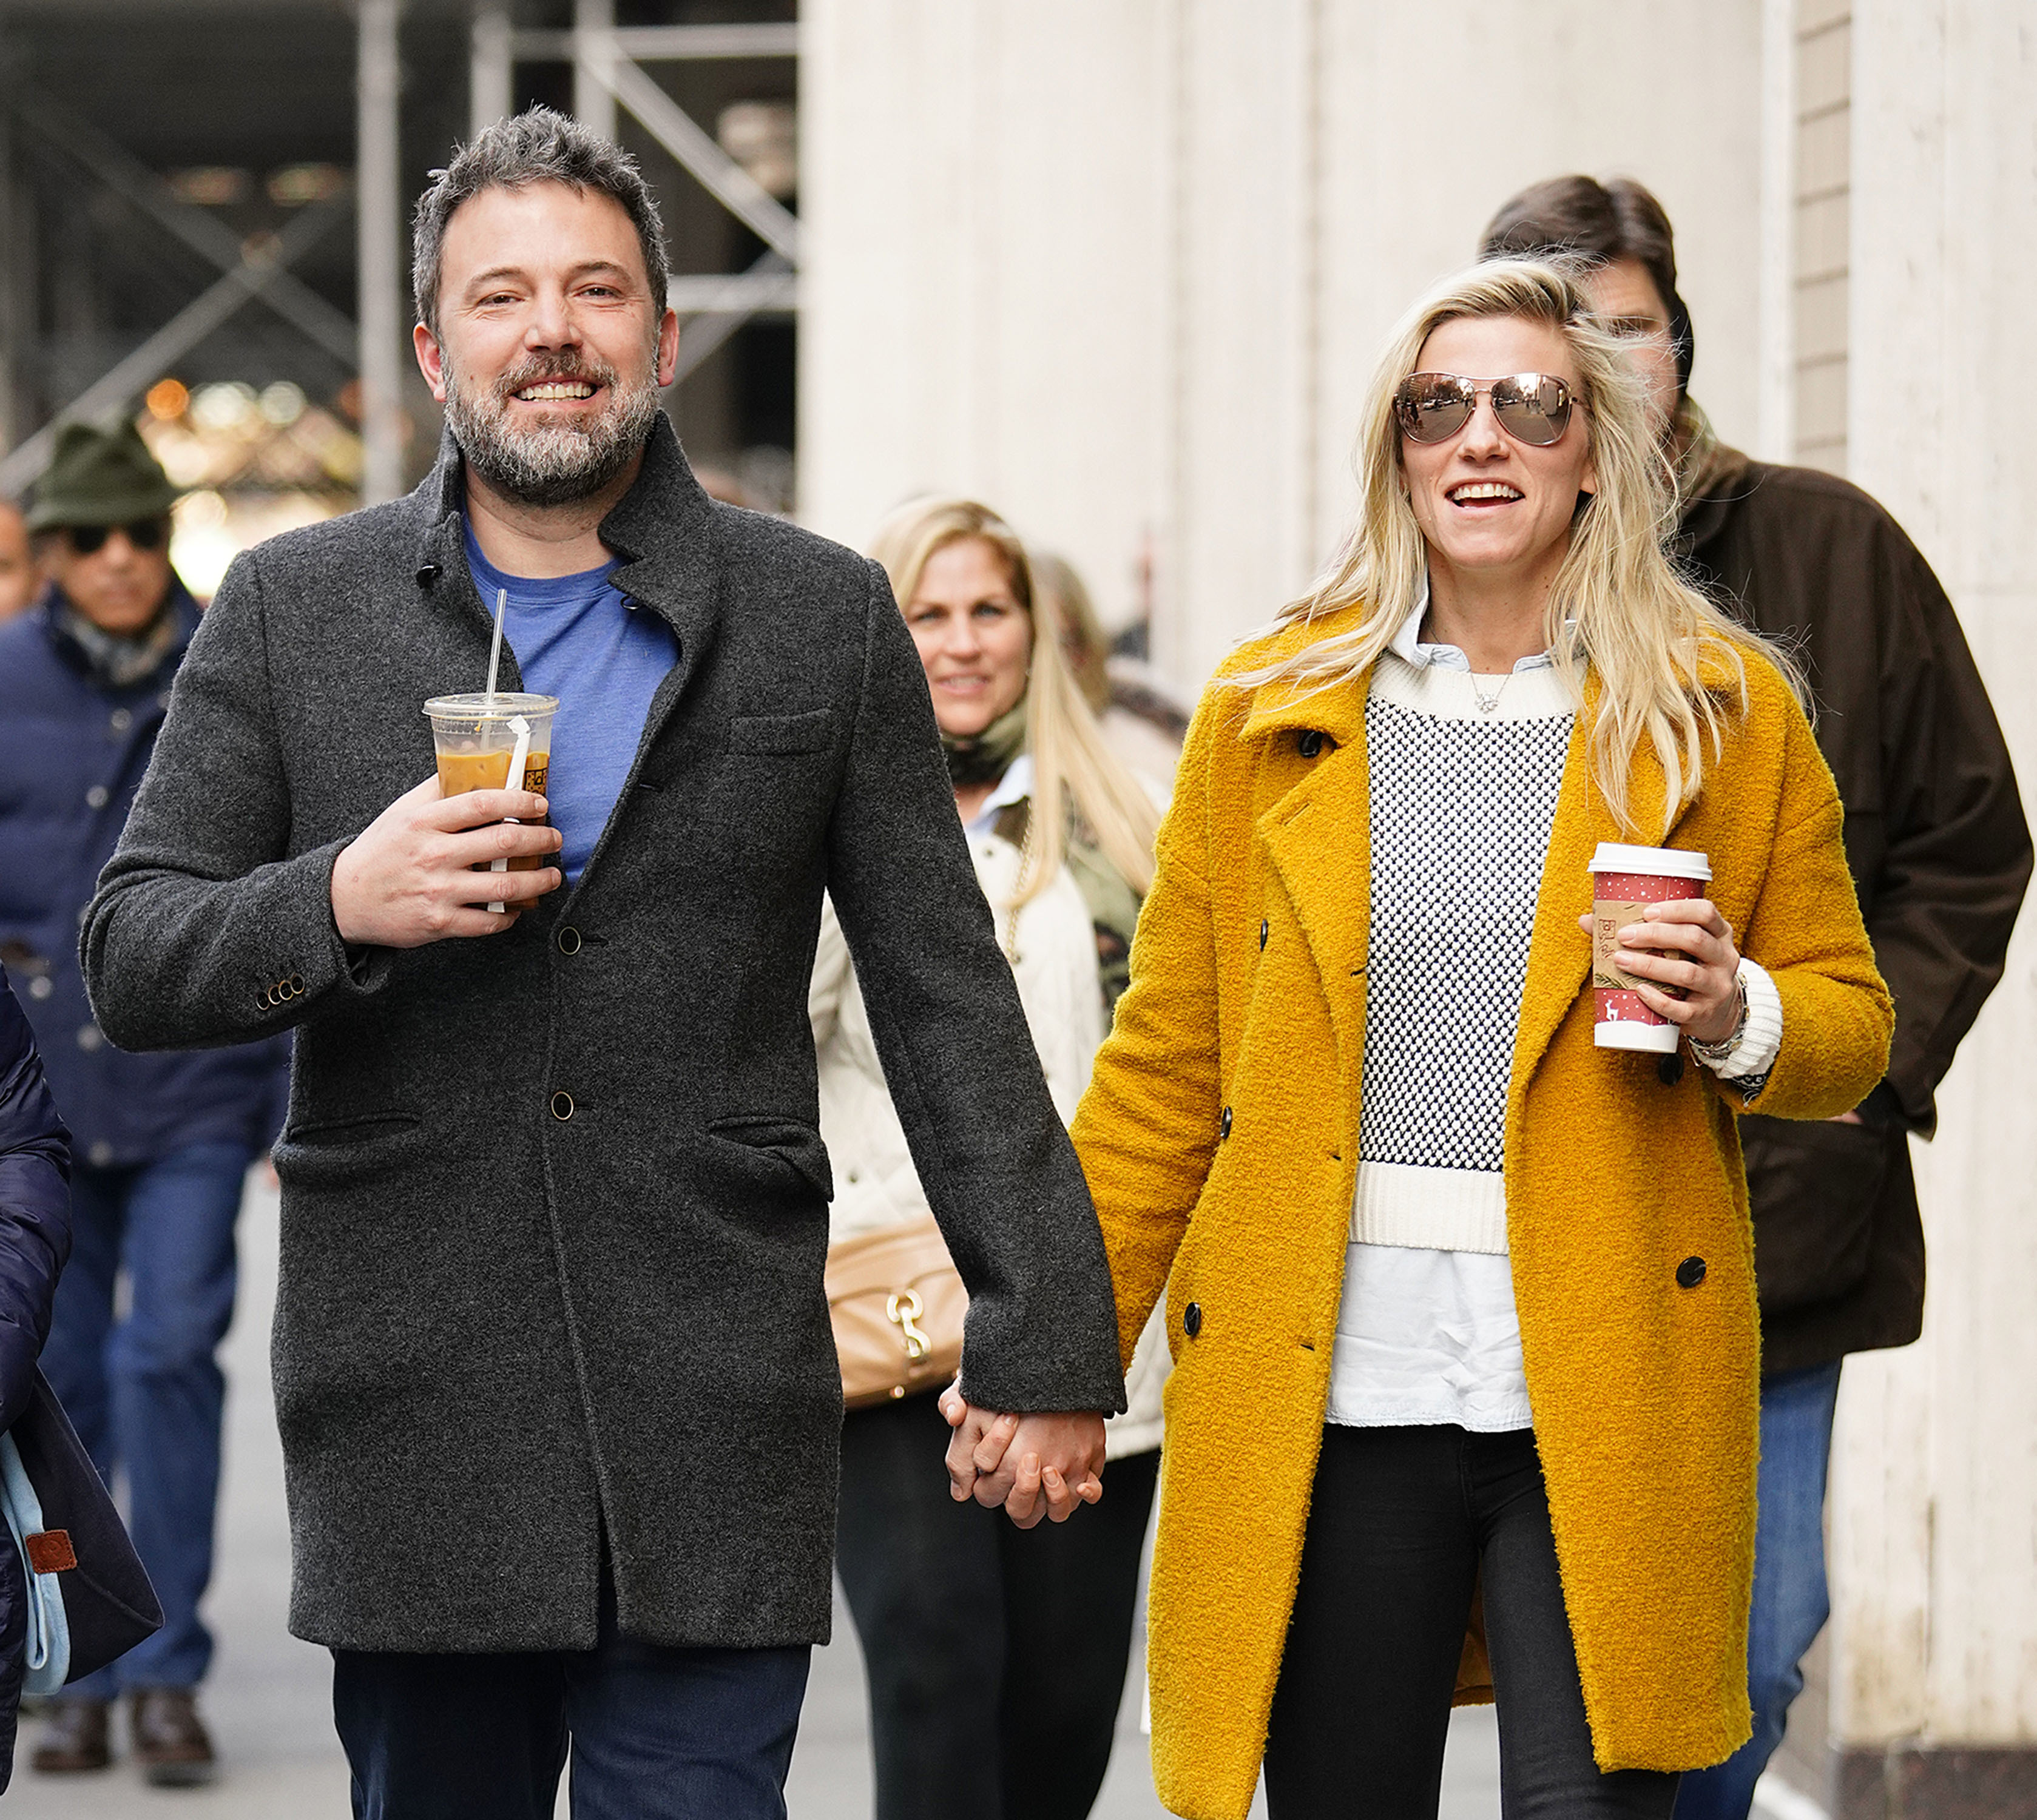 Lindsay Shookus no longer drinks around Ben Affleck: Report